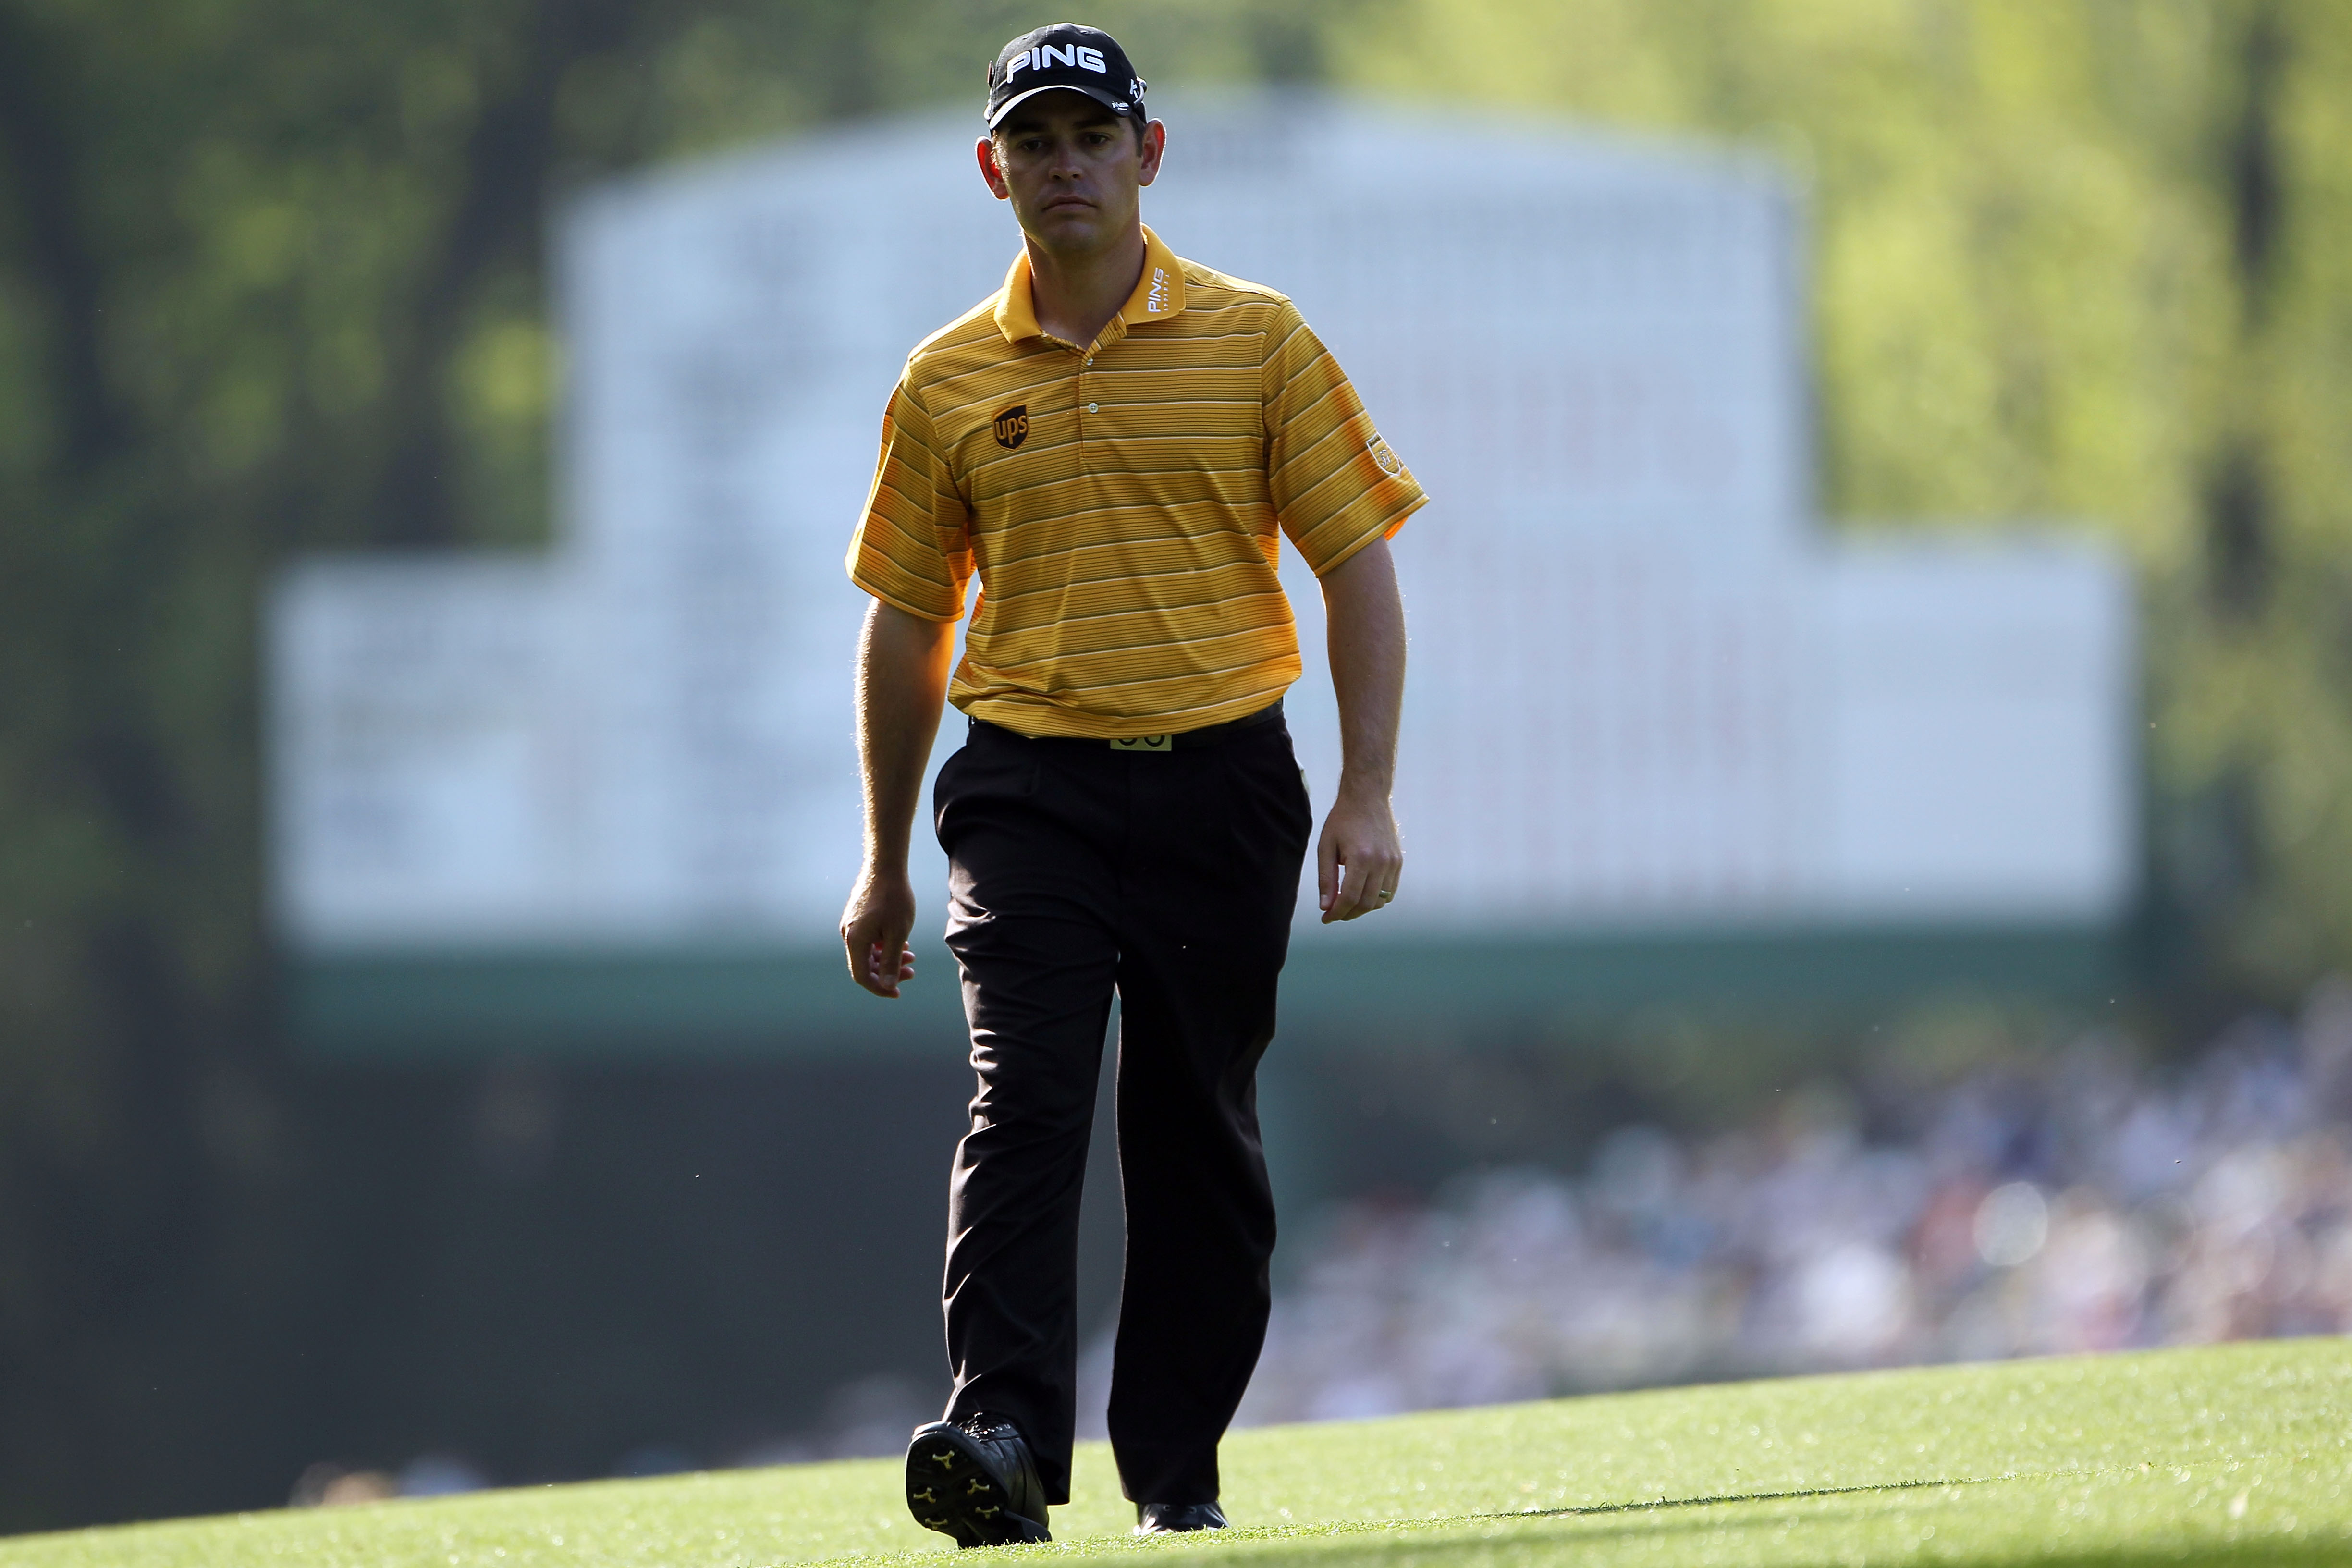 AUGUSTA, GA - APRIL 07:  Louis Oosthuizen of South Africa walks up the 14th hole during the first round of the 2011 Masters Tournament at Augusta National Golf Club on April 7, 2011 in Augusta, Georgia.  (Photo by Jamie Squire/Getty Images)